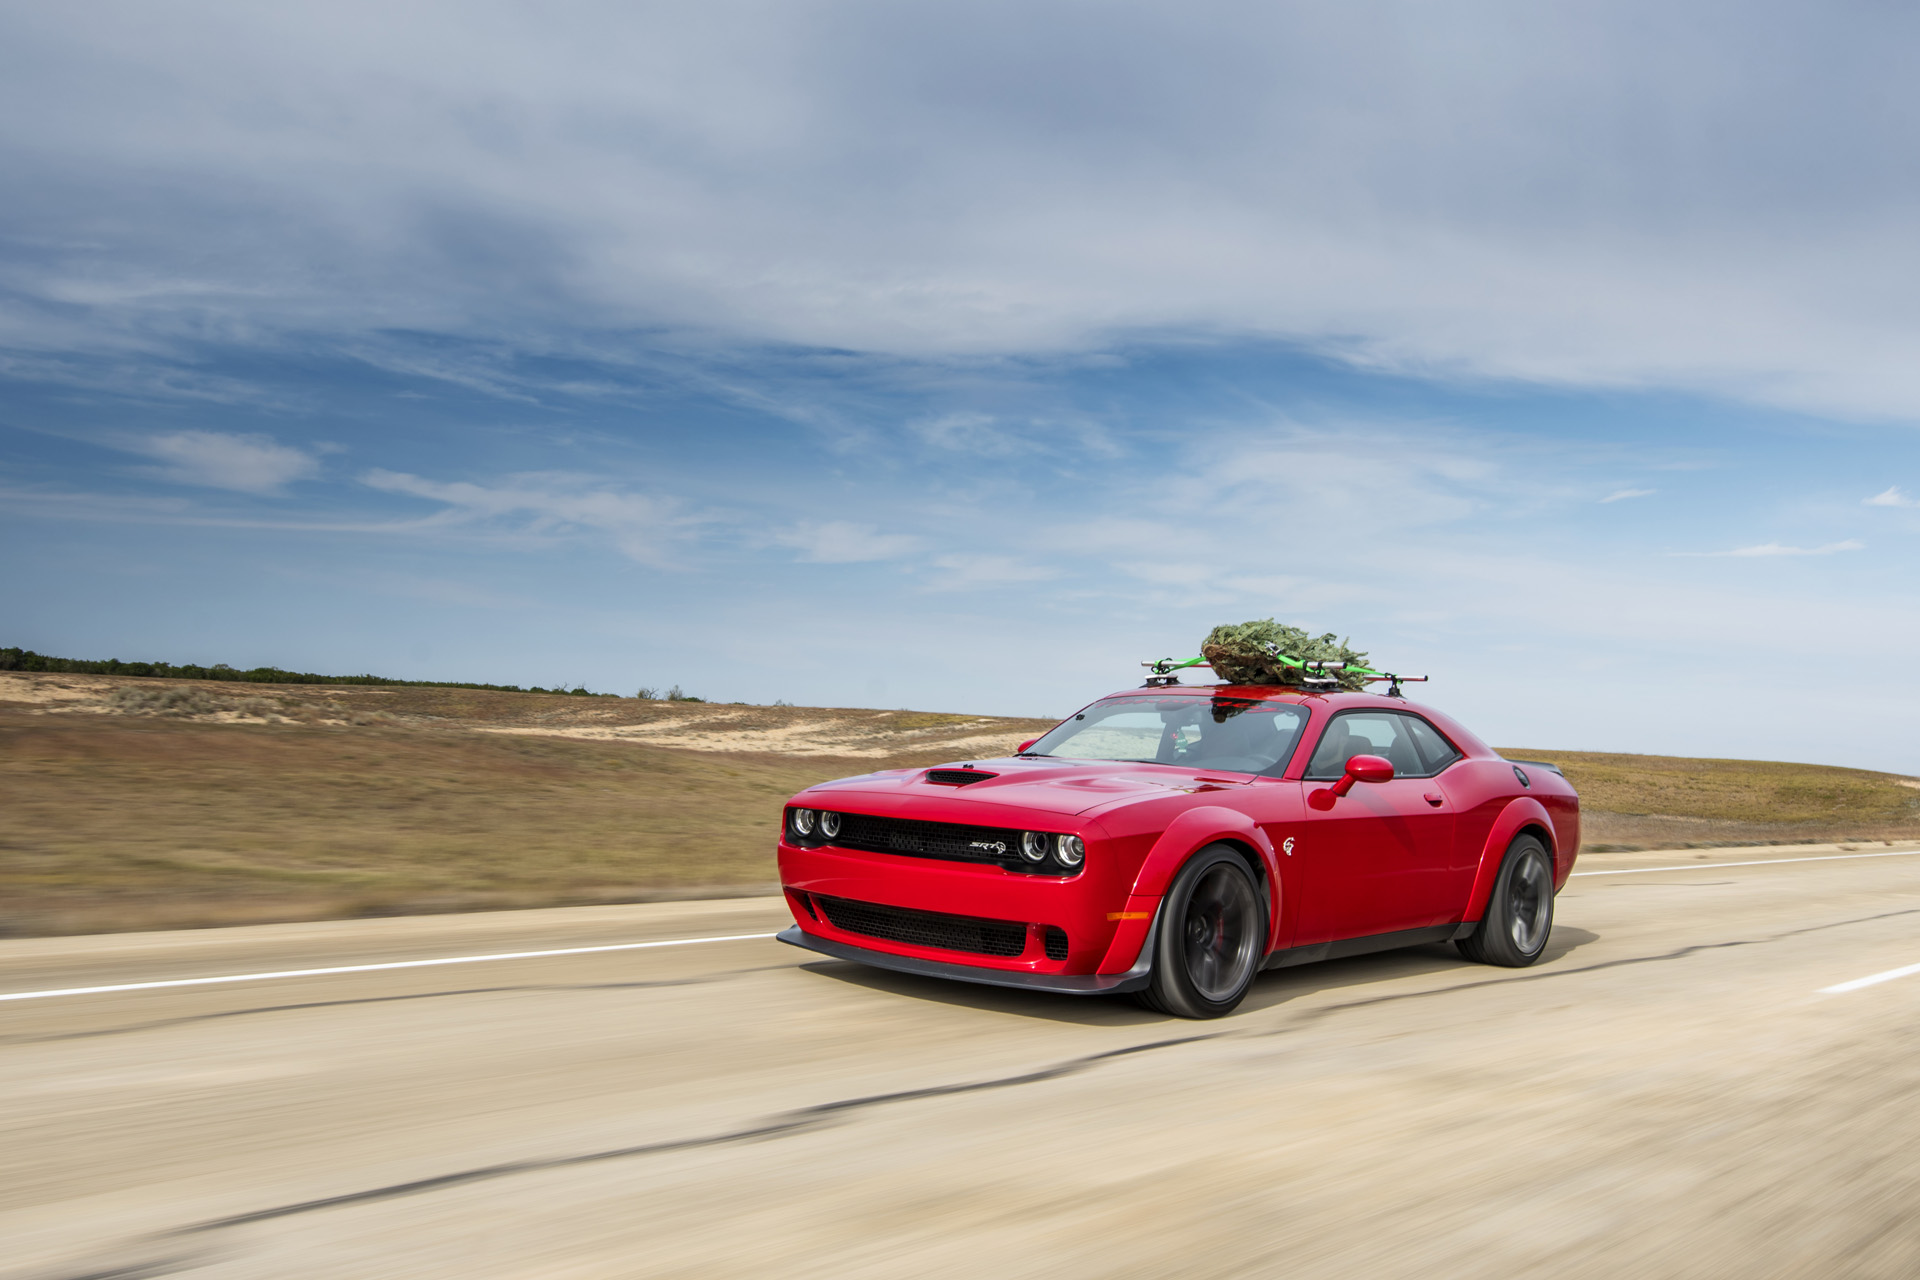 watch hennessey do 174 mph in a hellcat hauling a christmas tree pictures photos wallpapers. Black Bedroom Furniture Sets. Home Design Ideas